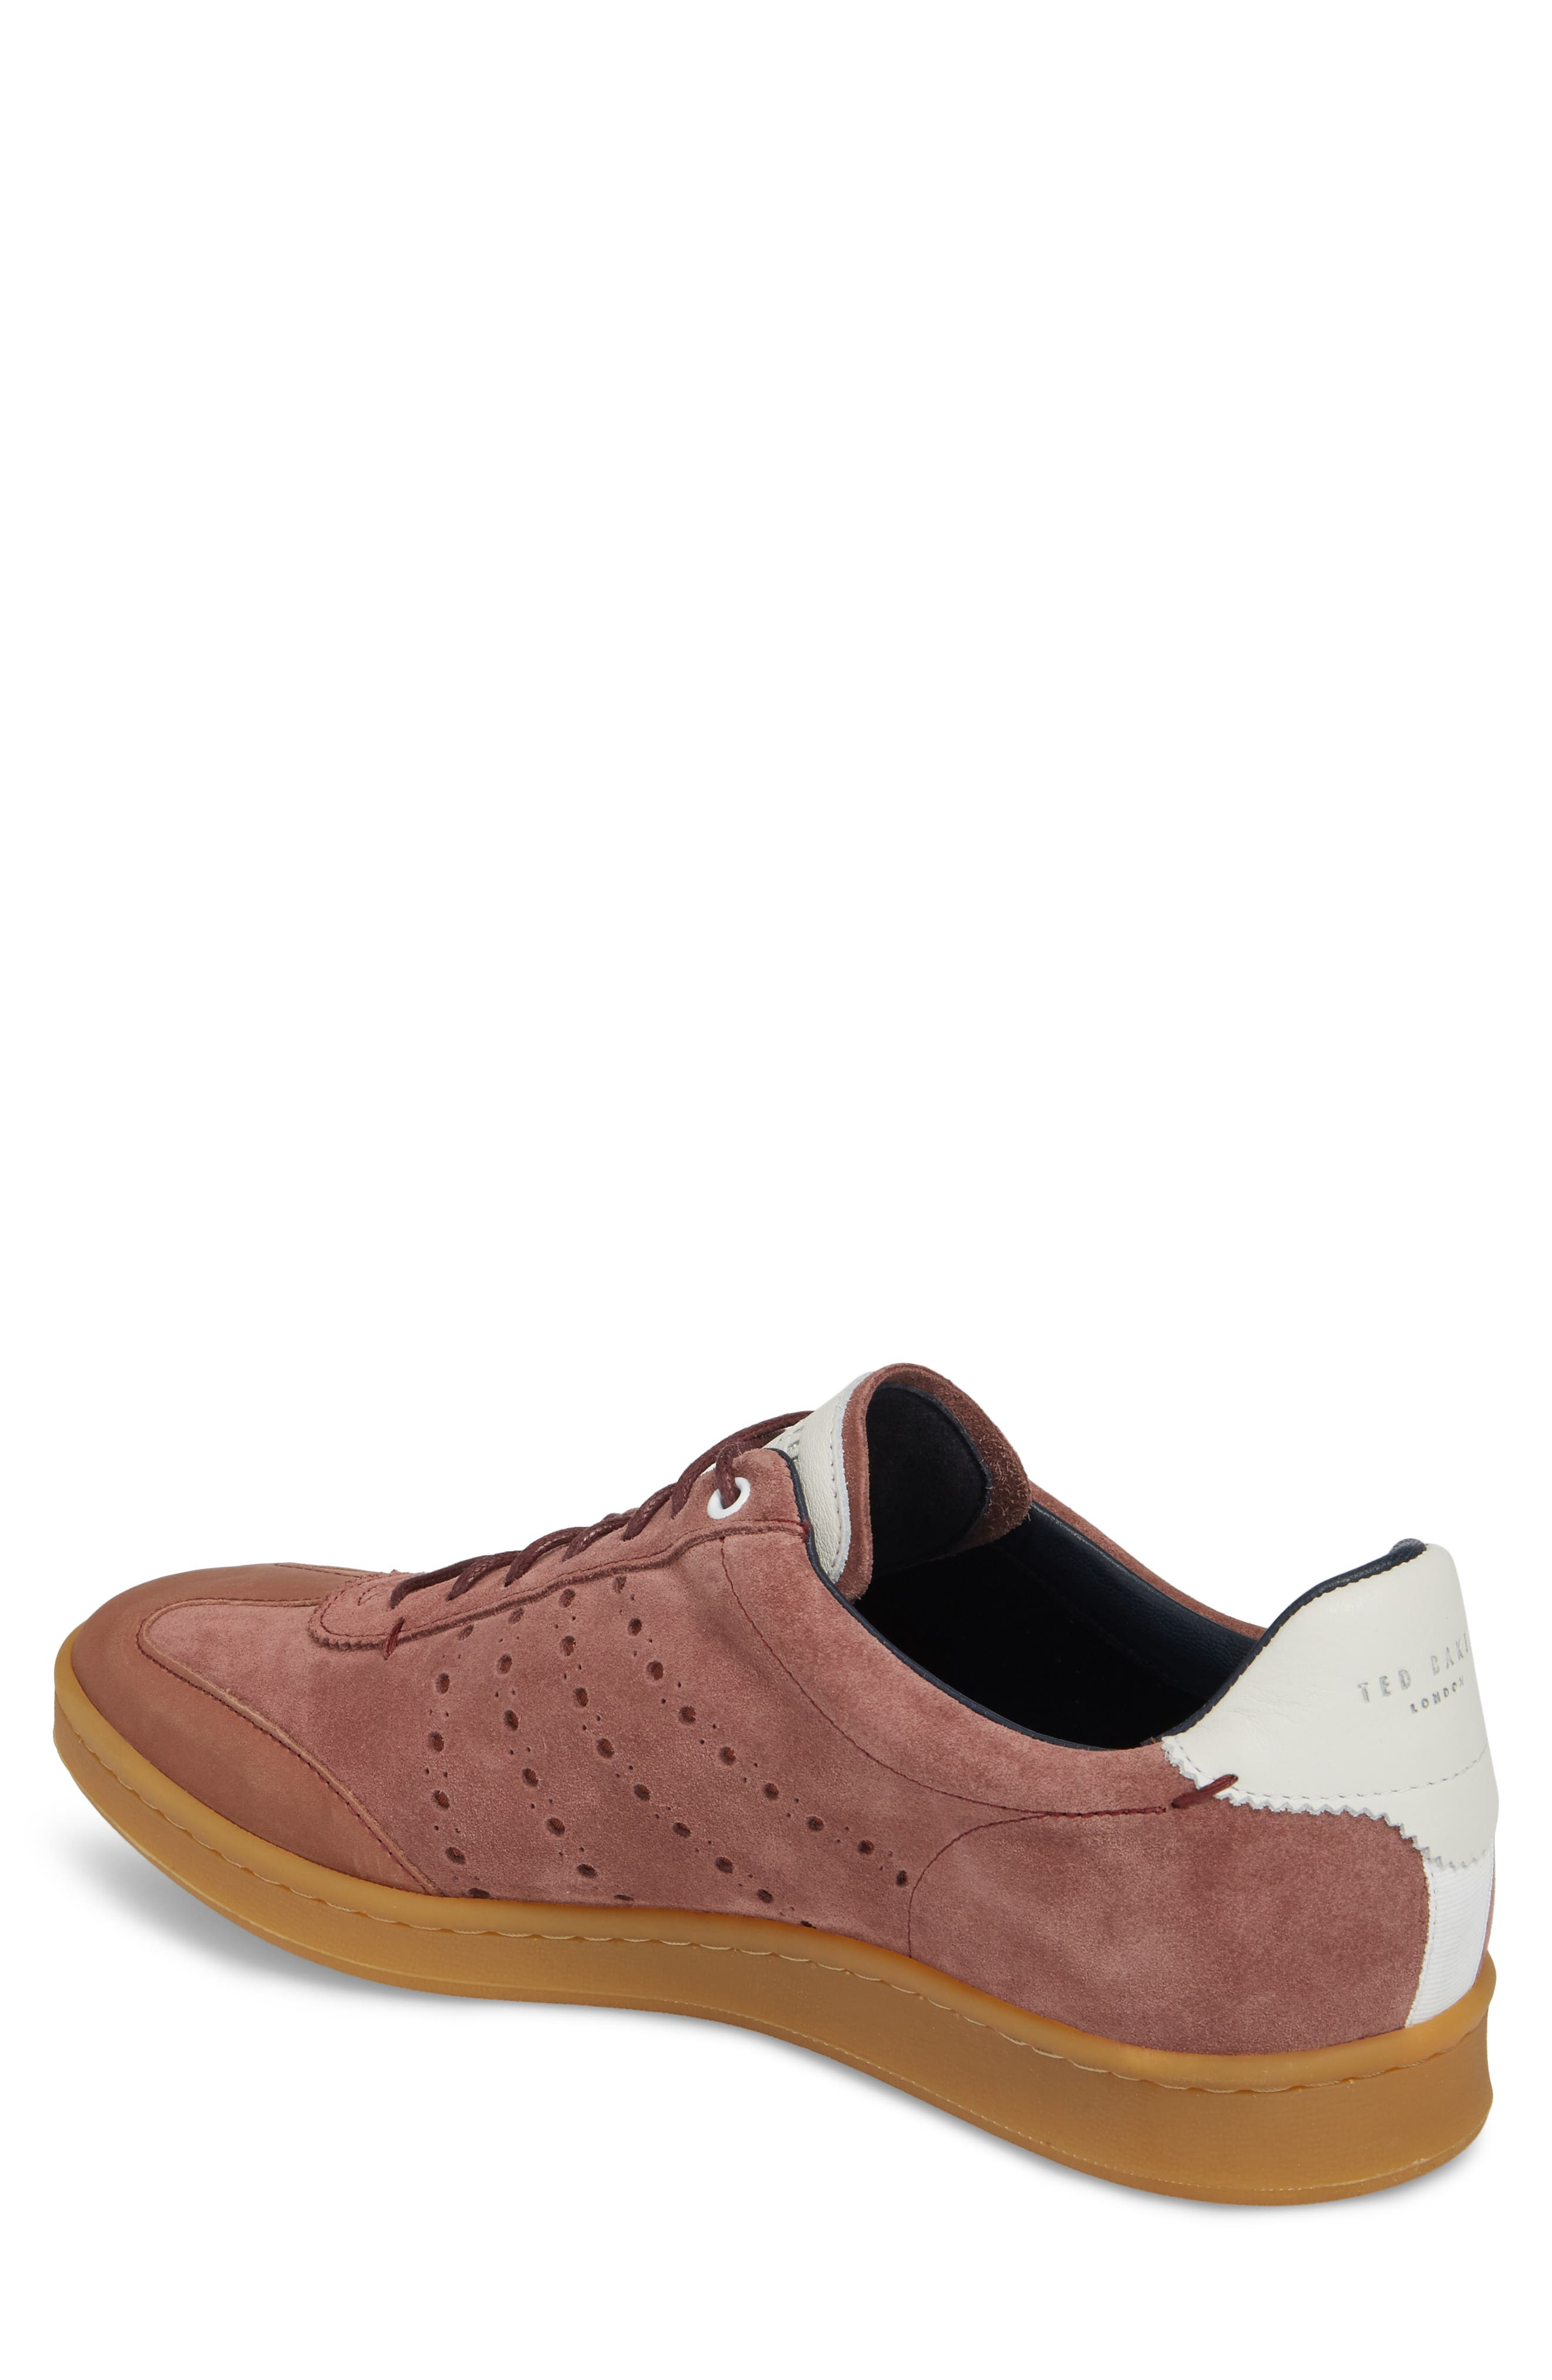 Orlees Low Top Sneaker,                             Alternate thumbnail 2, color,                             Pink Leather/ Suede